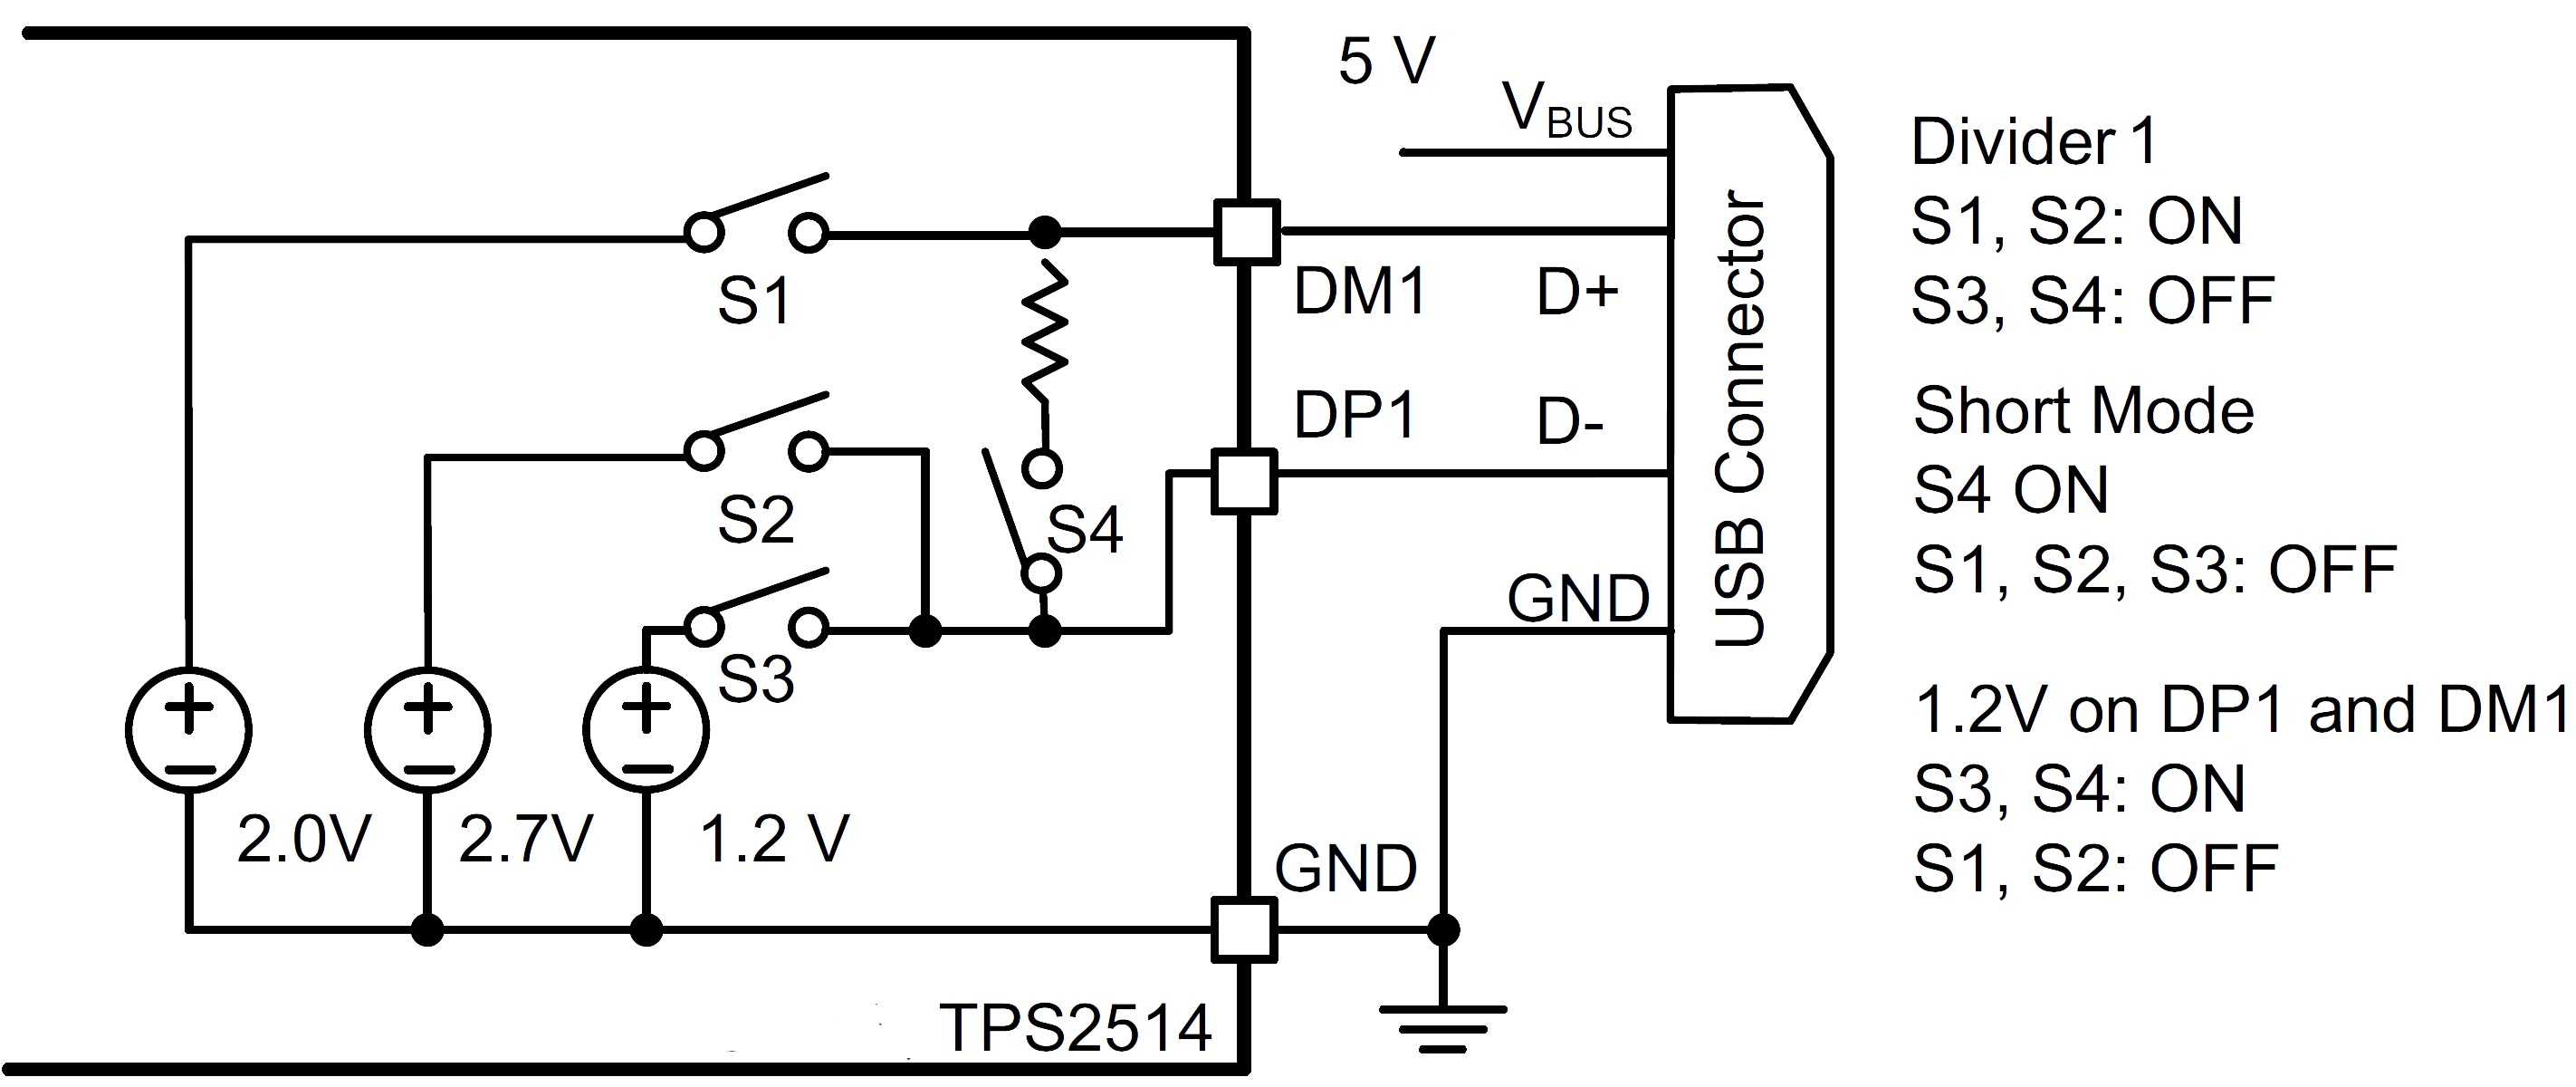 Diagram for Car Battery Charger Ipad Battery Wiring Diagram Wiring Diagram New Of Diagram for Car Battery Charger